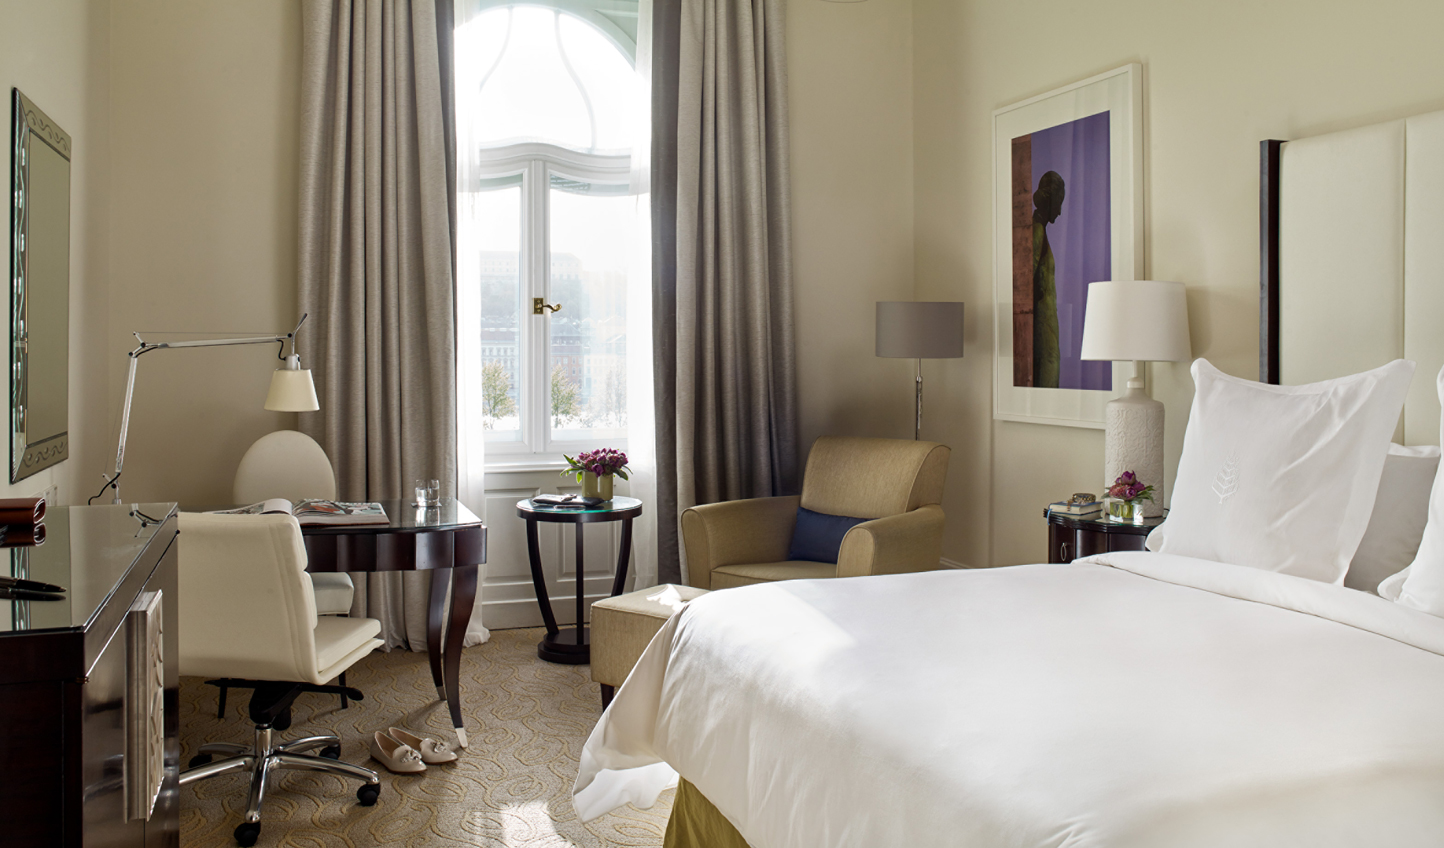 Glistening views of the River Danube from your room